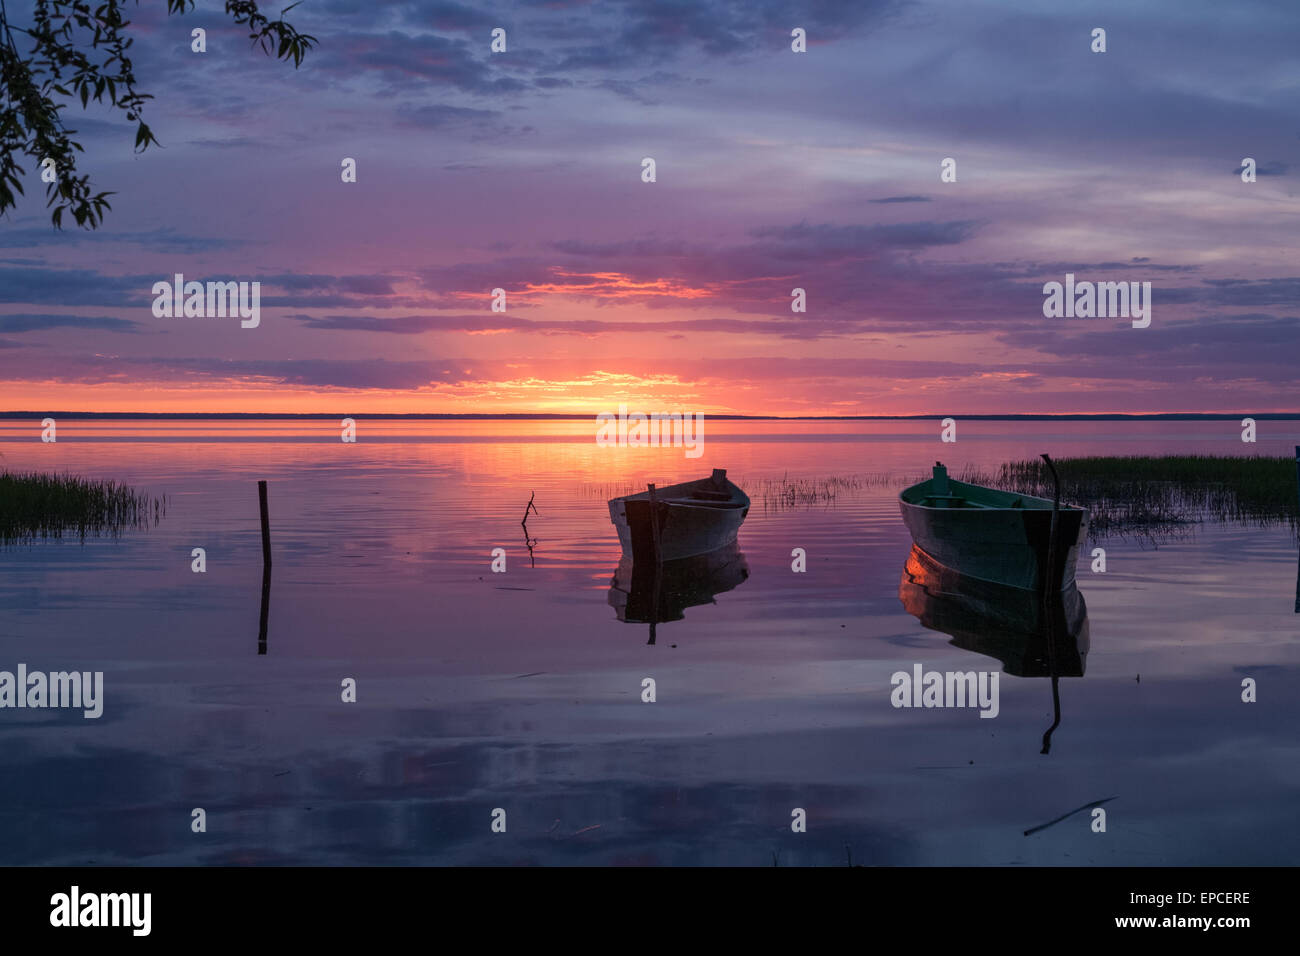 two boats on pier expect the owners from a decline till the dawn - Stock Image